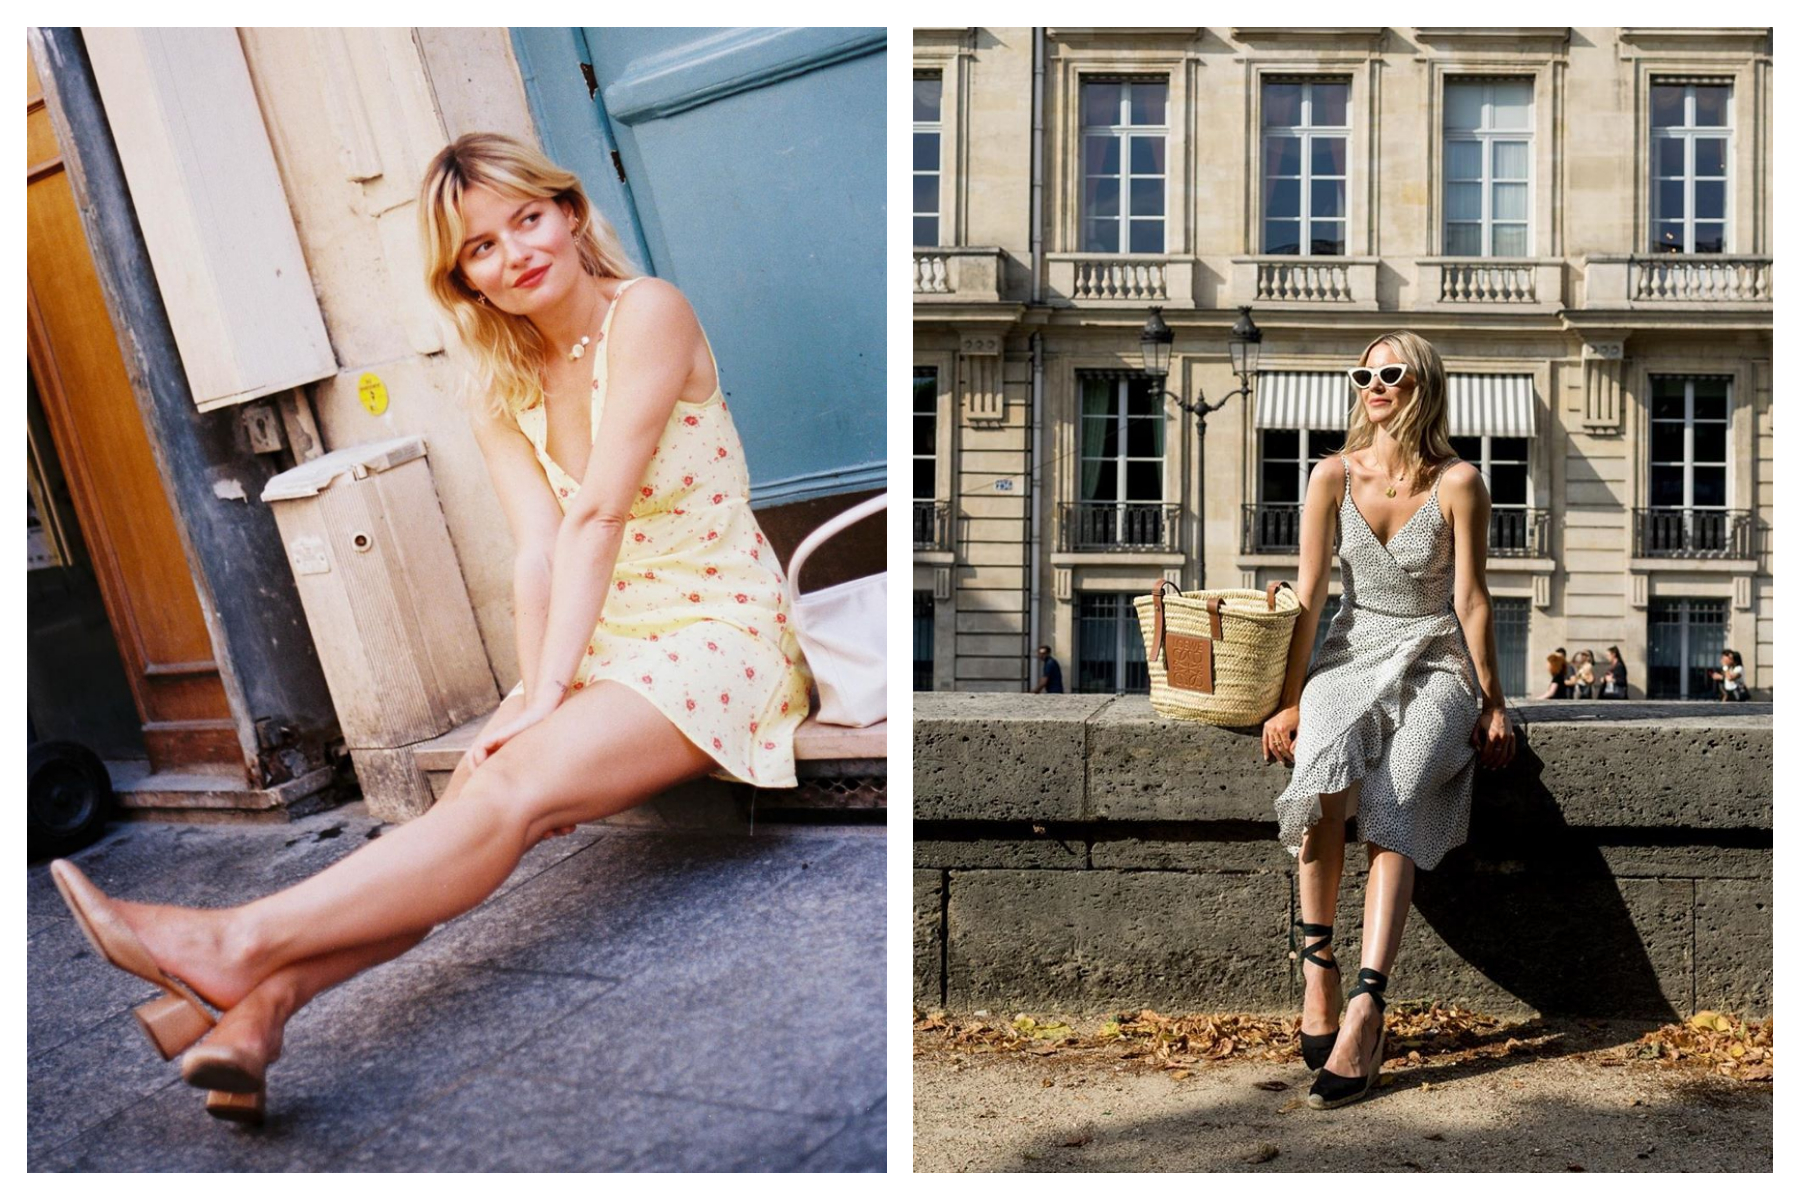 Fashion influencer Sabina Socol in summer in Paris, wearing a flower-print dress, sitting on a doorstep (left). Infuencer Rue Rodier sitting on a ledge close to the River Seine, wearing a light summer dress and espadrilles (right).